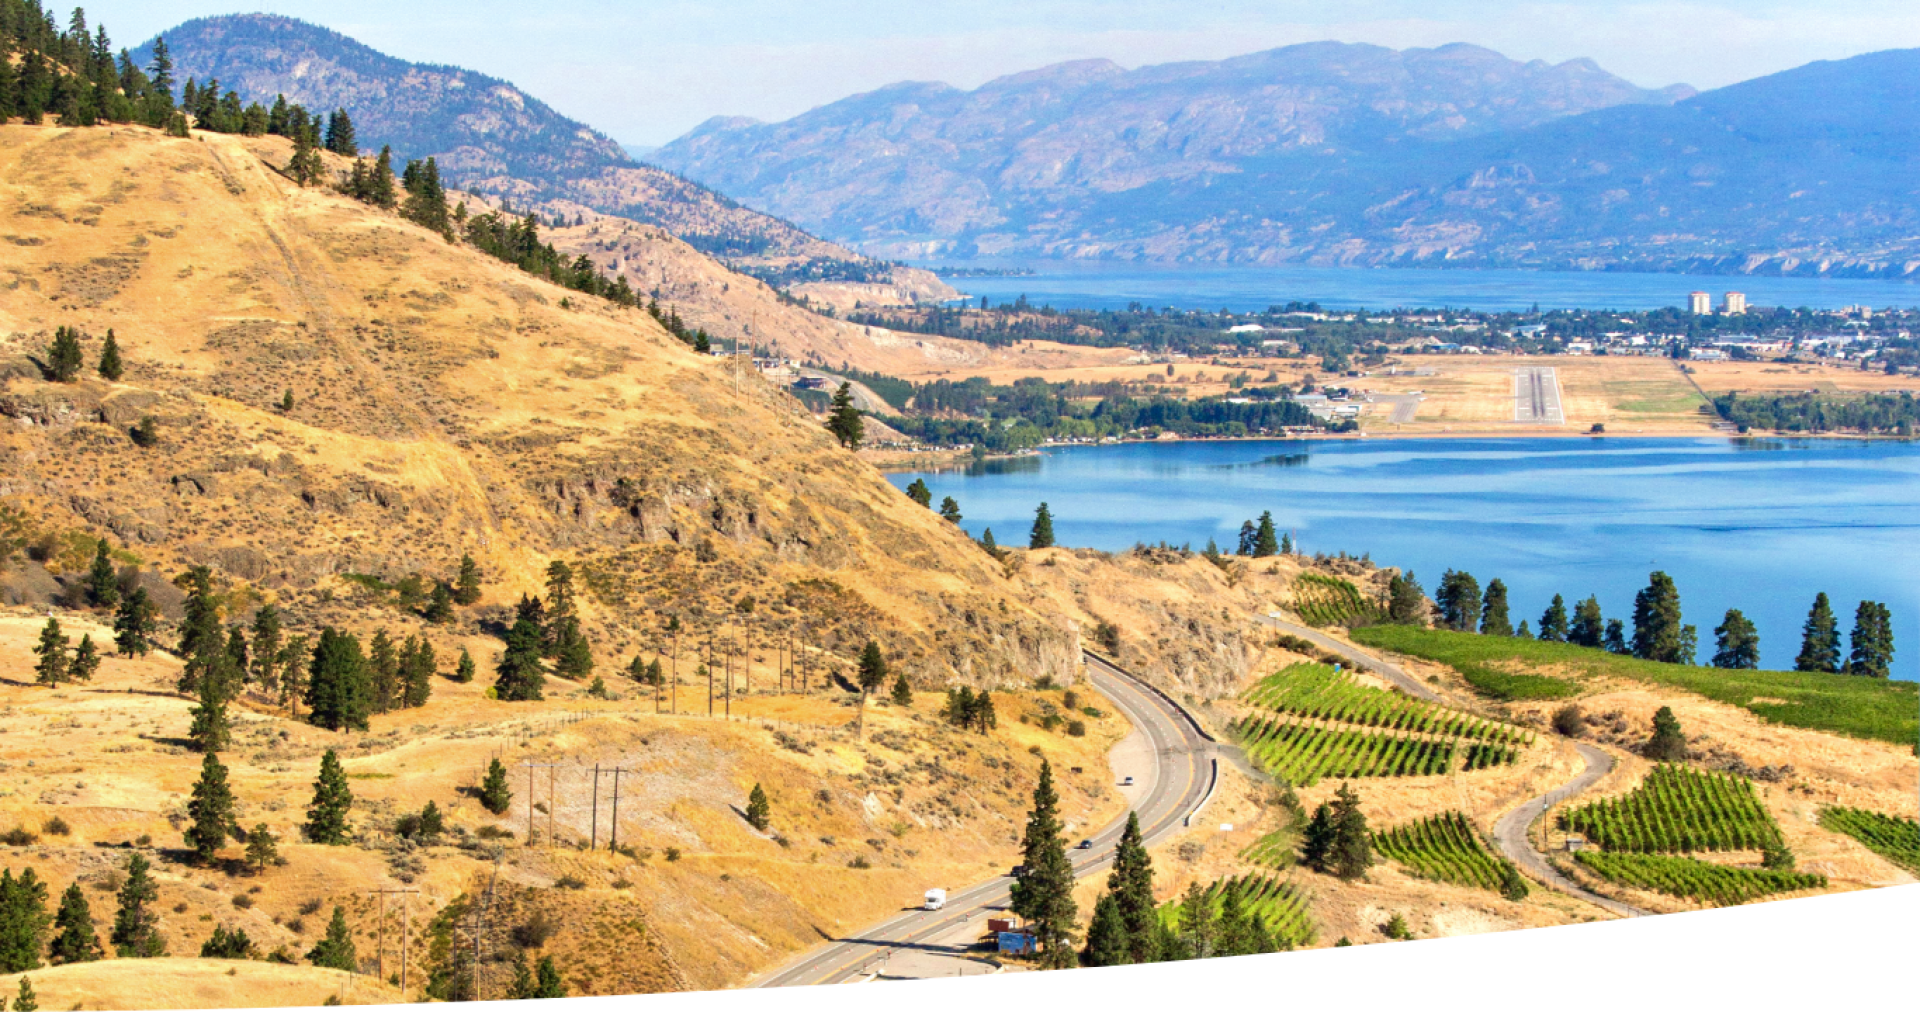 Okanagan landscape scene of hills and the lake